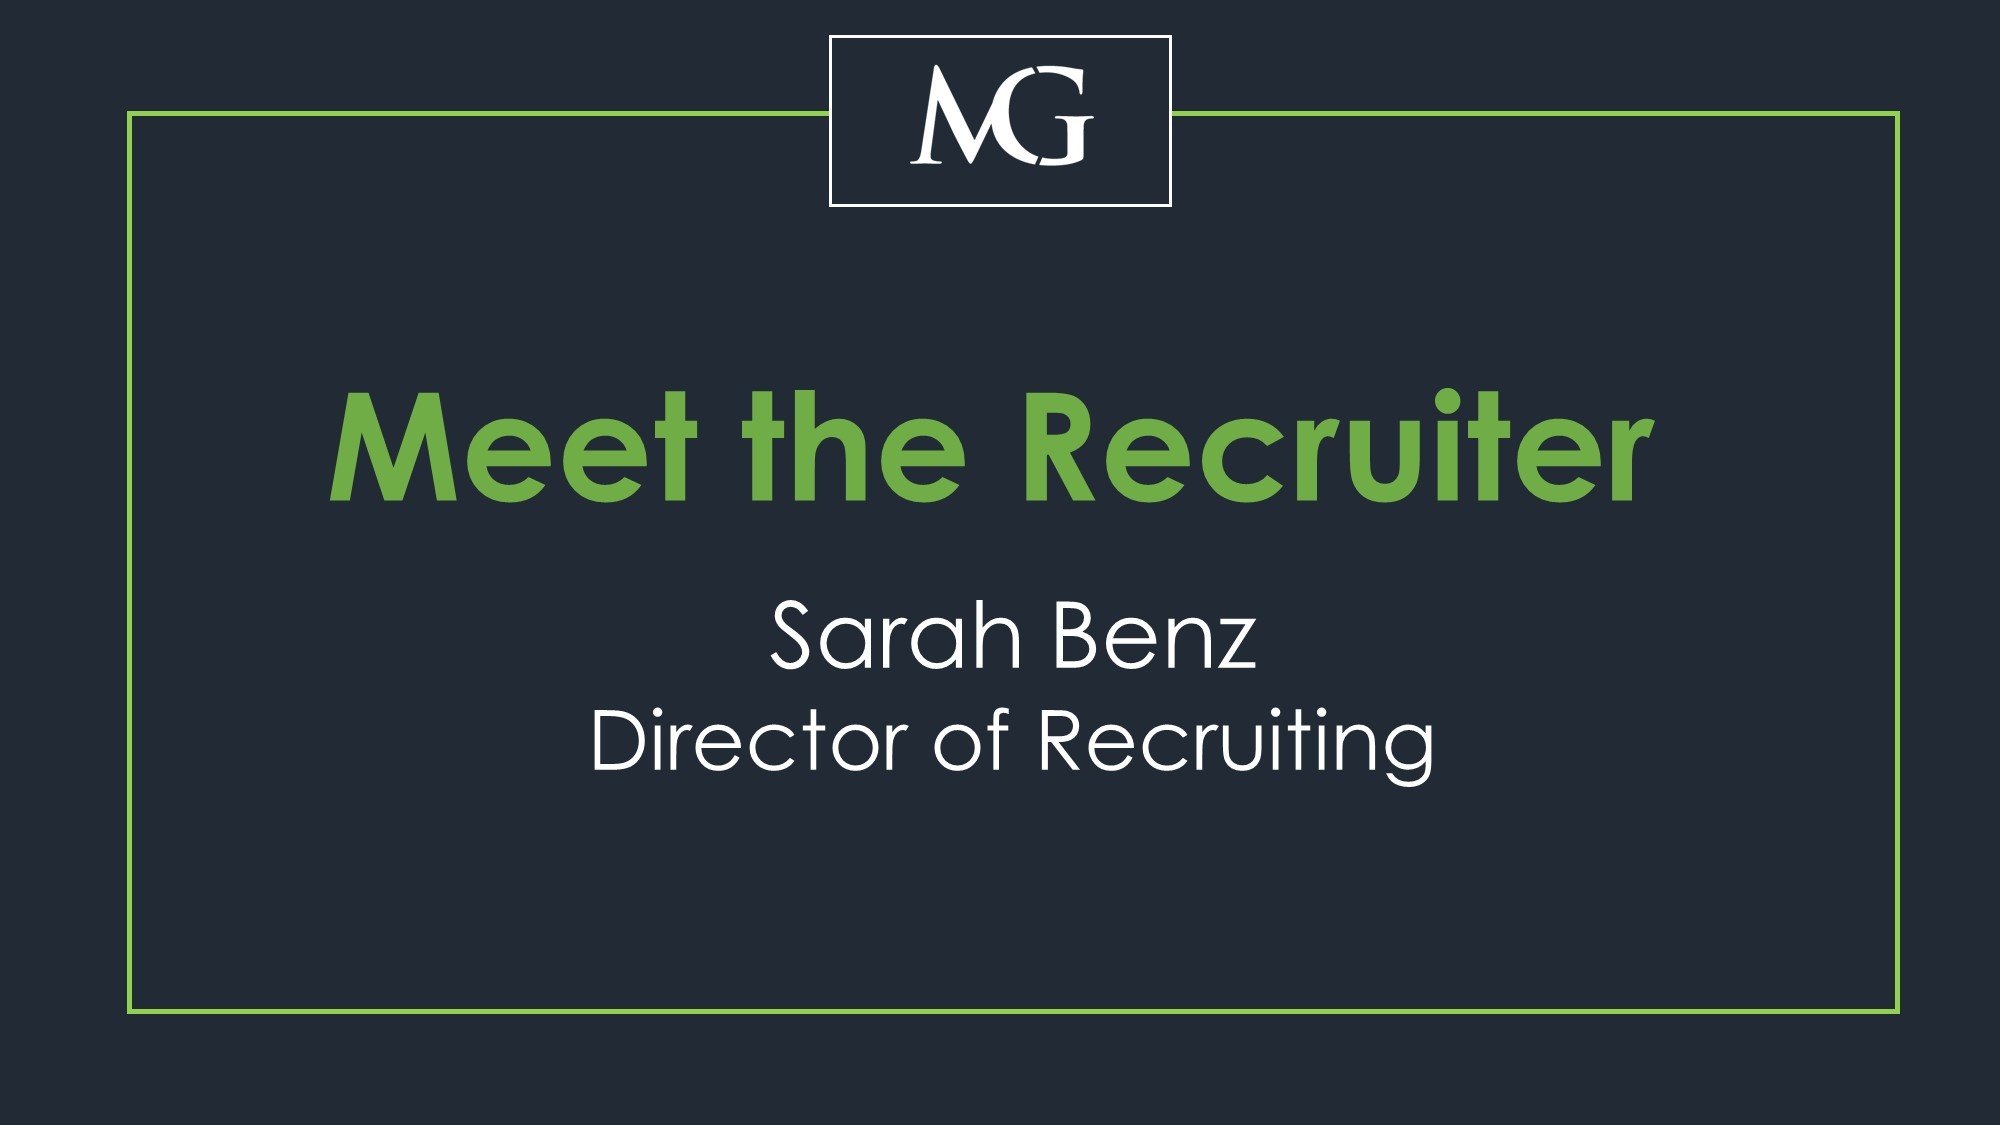 meet the recruiter promo Sarah